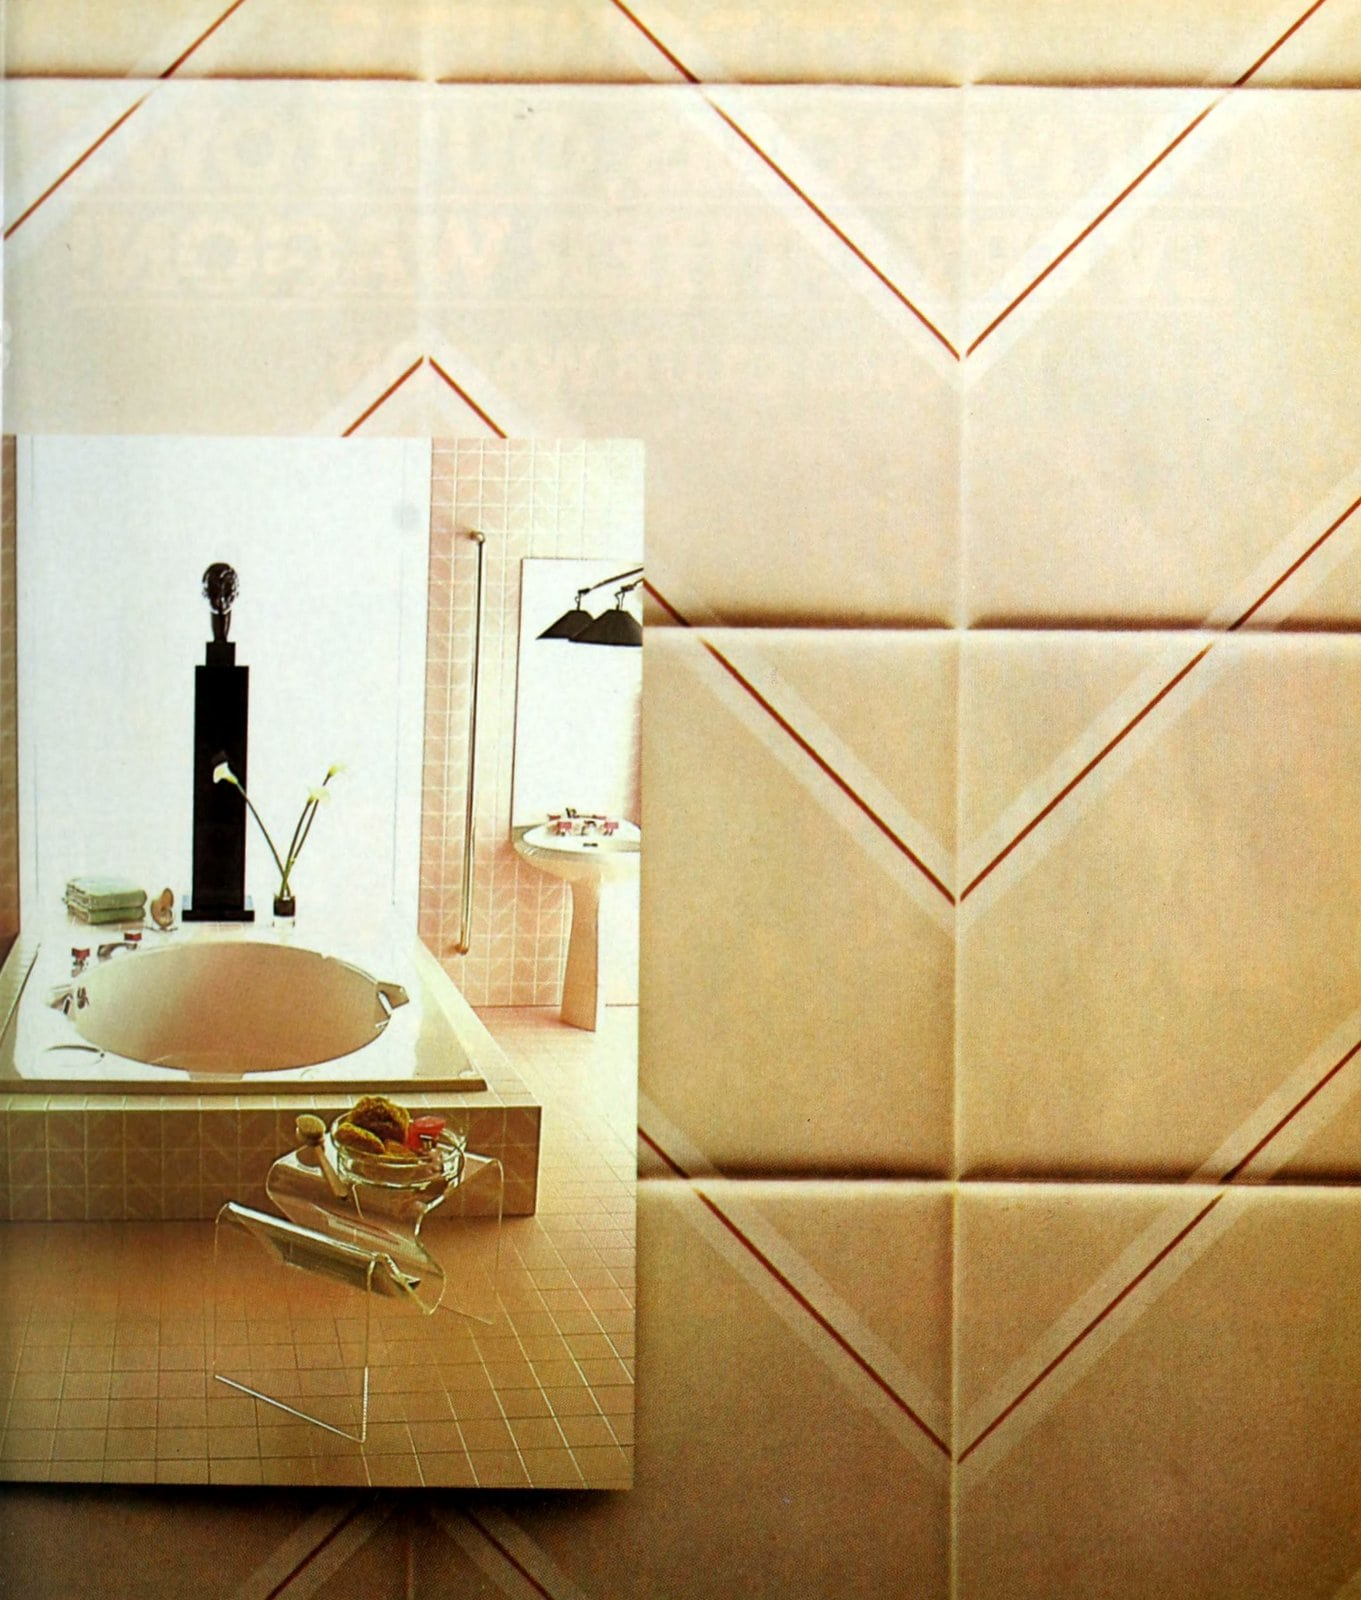 Retro beige bathroom tile with red accent lines (1984)